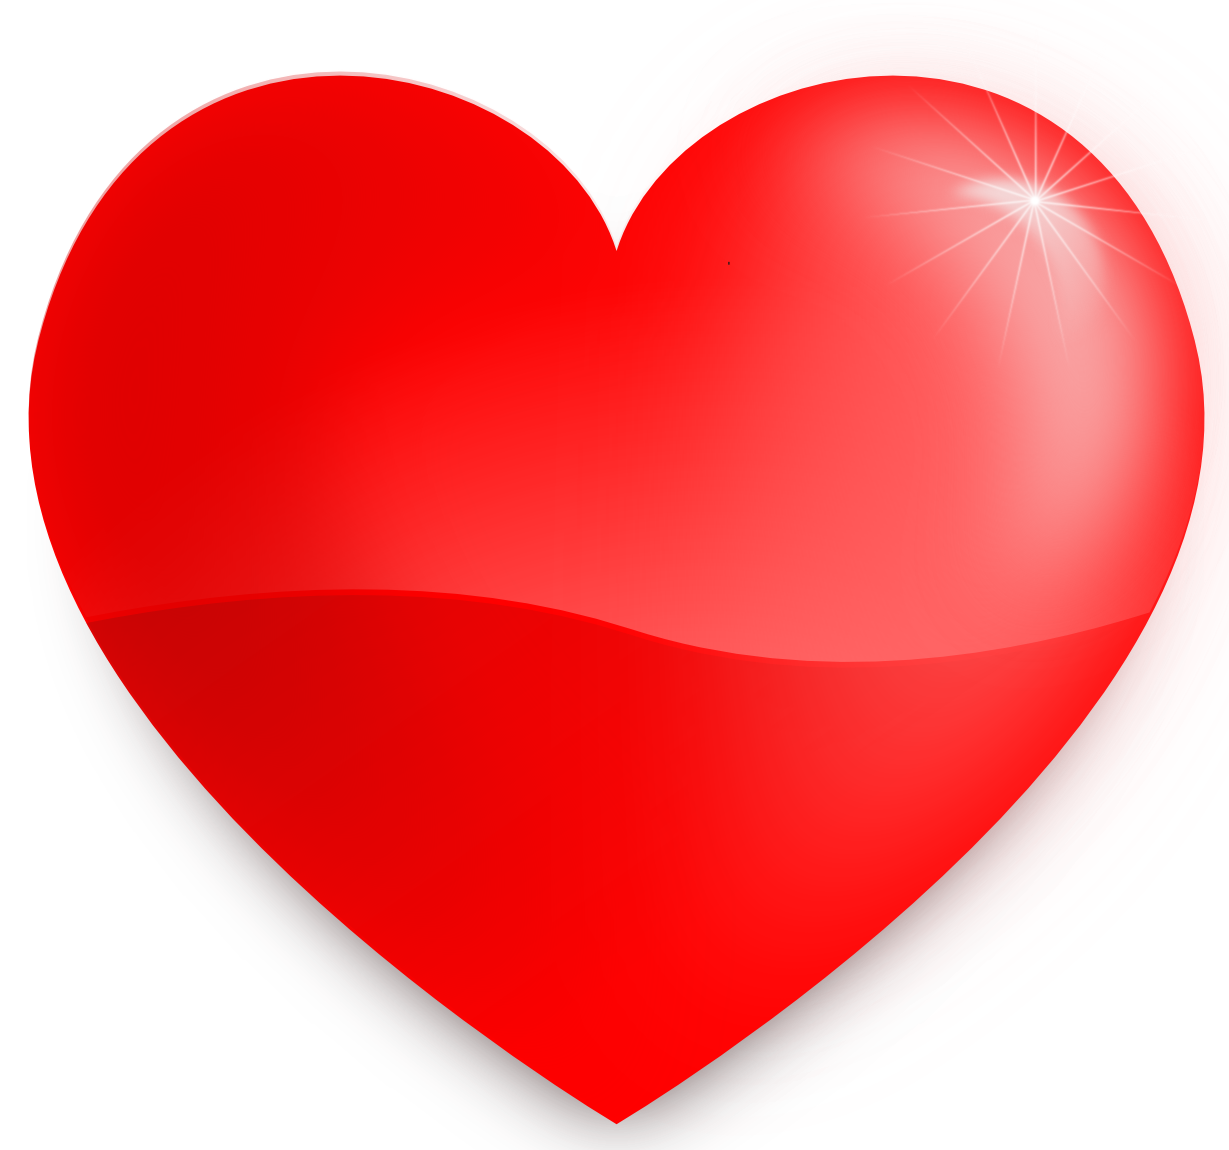 Background image arts. Valentines day heart png png black and white stock